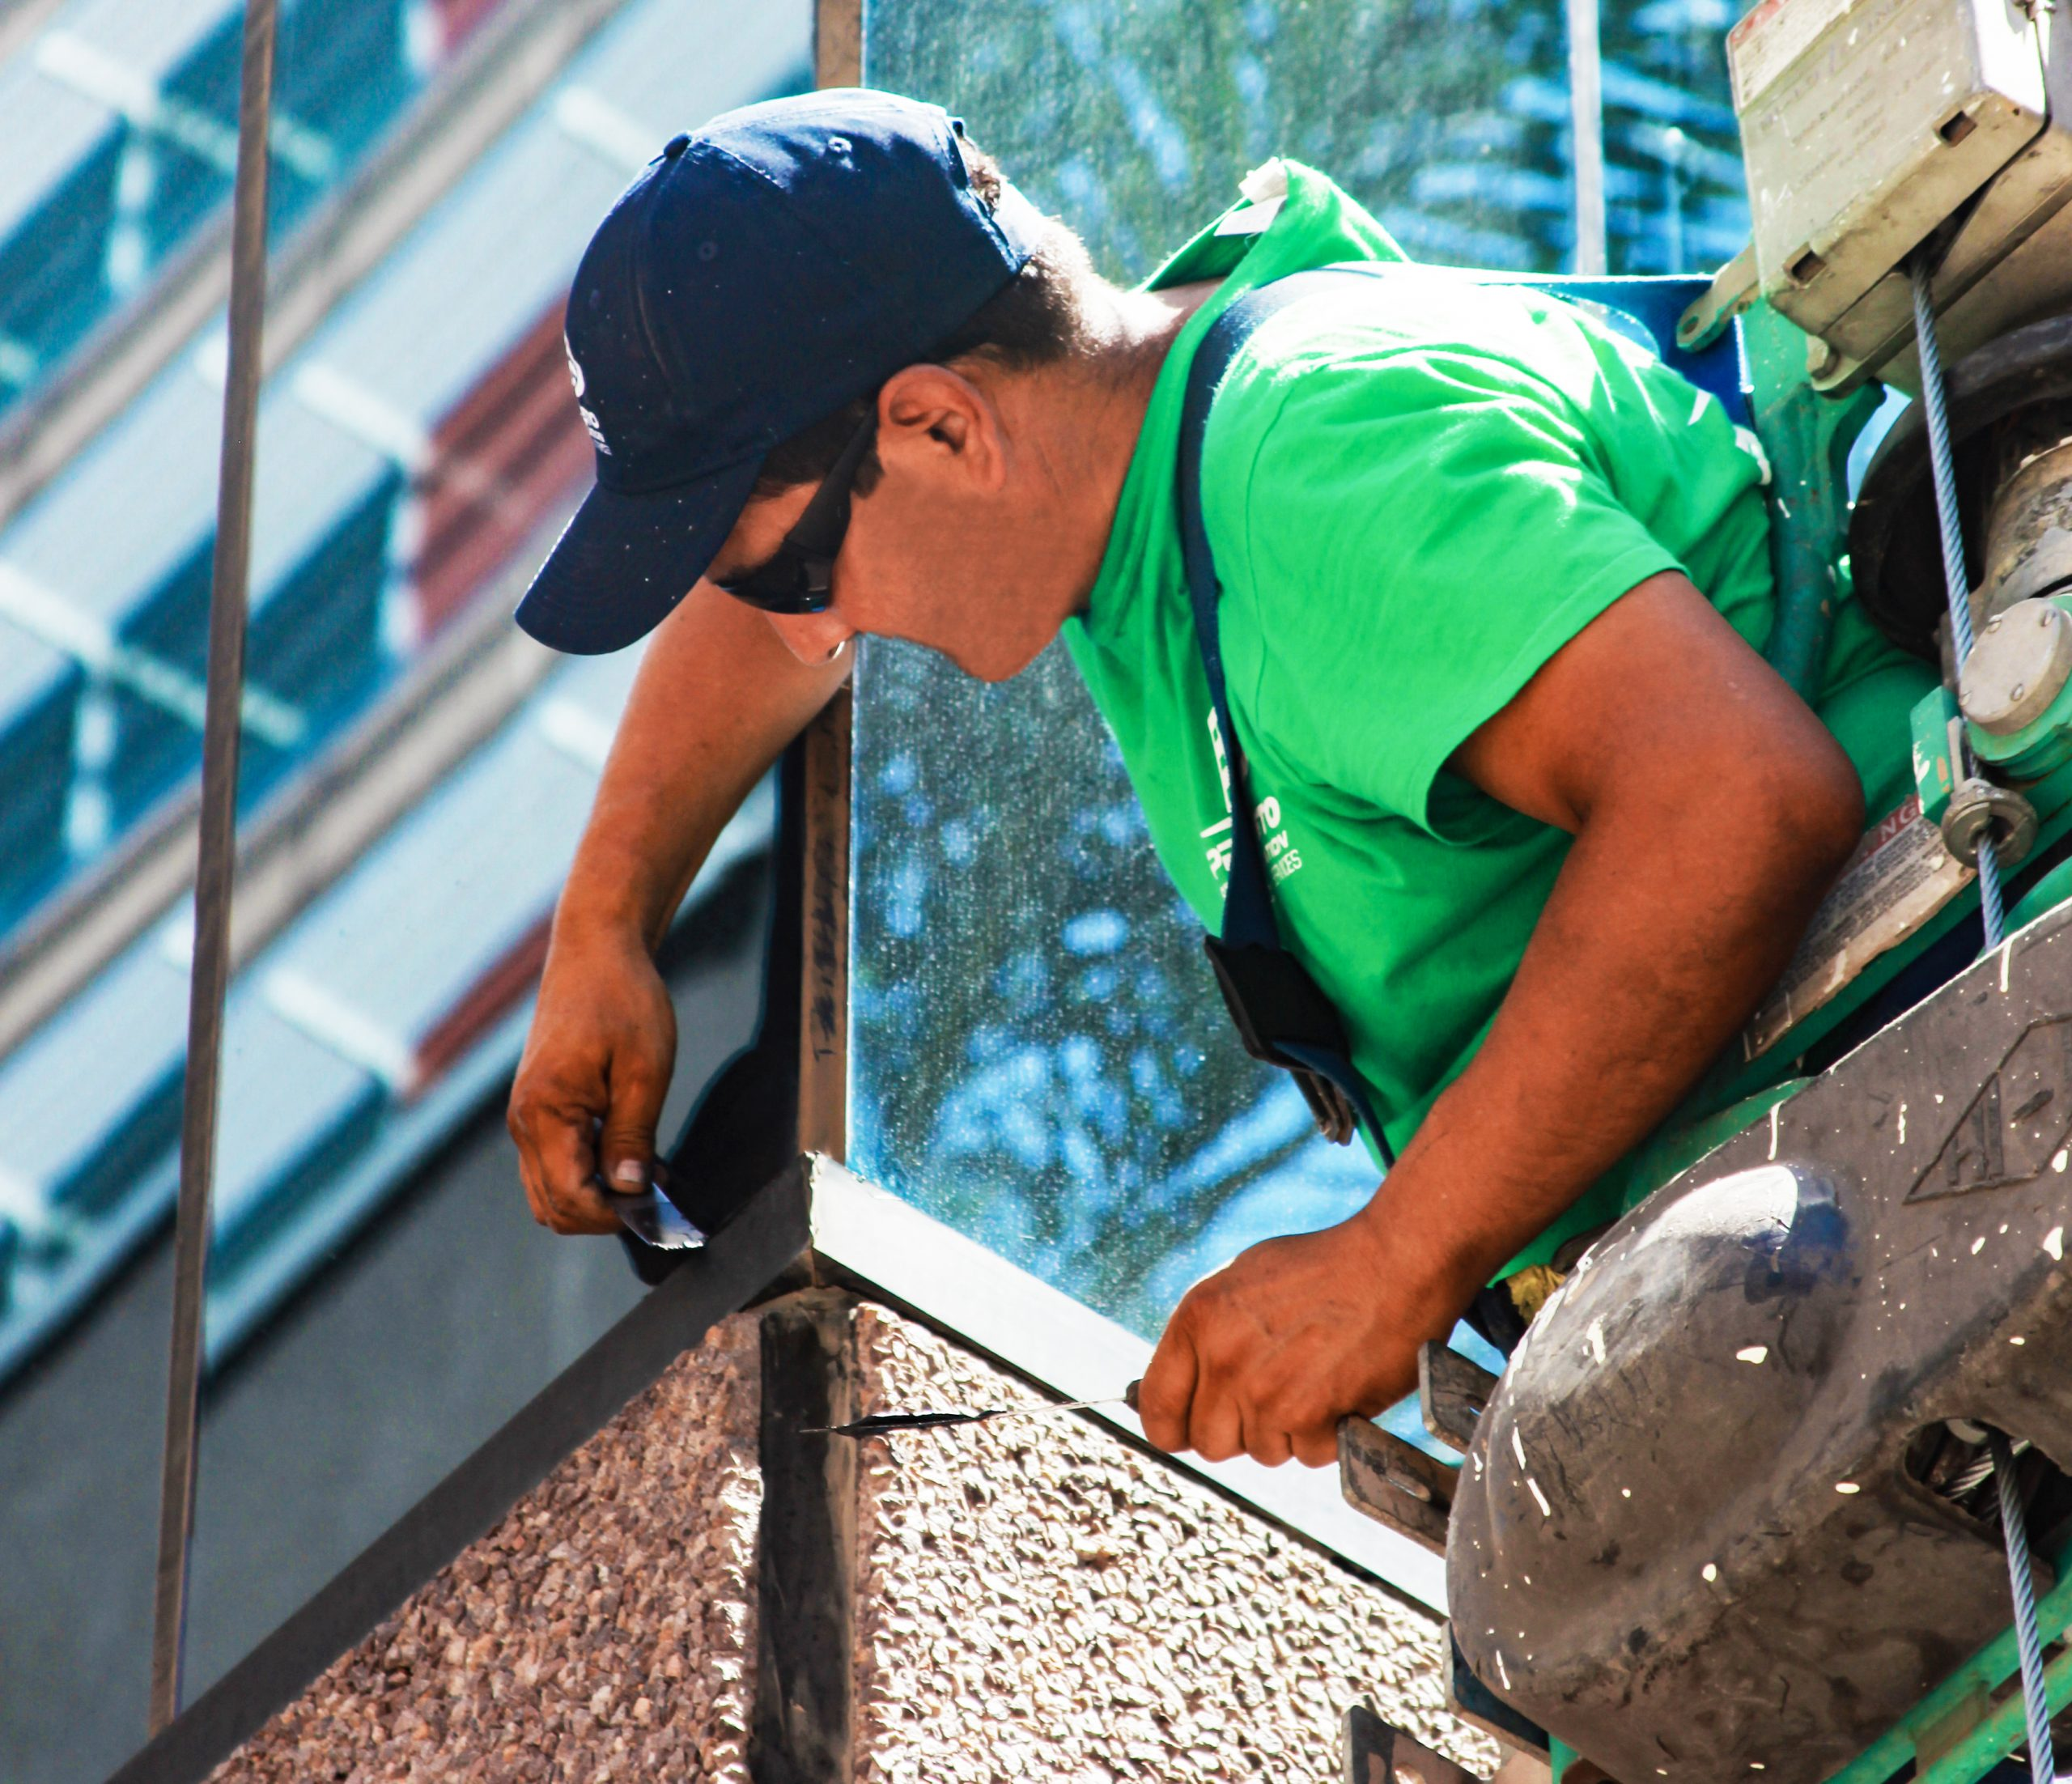 Presto Restoration technicians use swing stages to waterproof all area building's facade in Phoenix, AZ